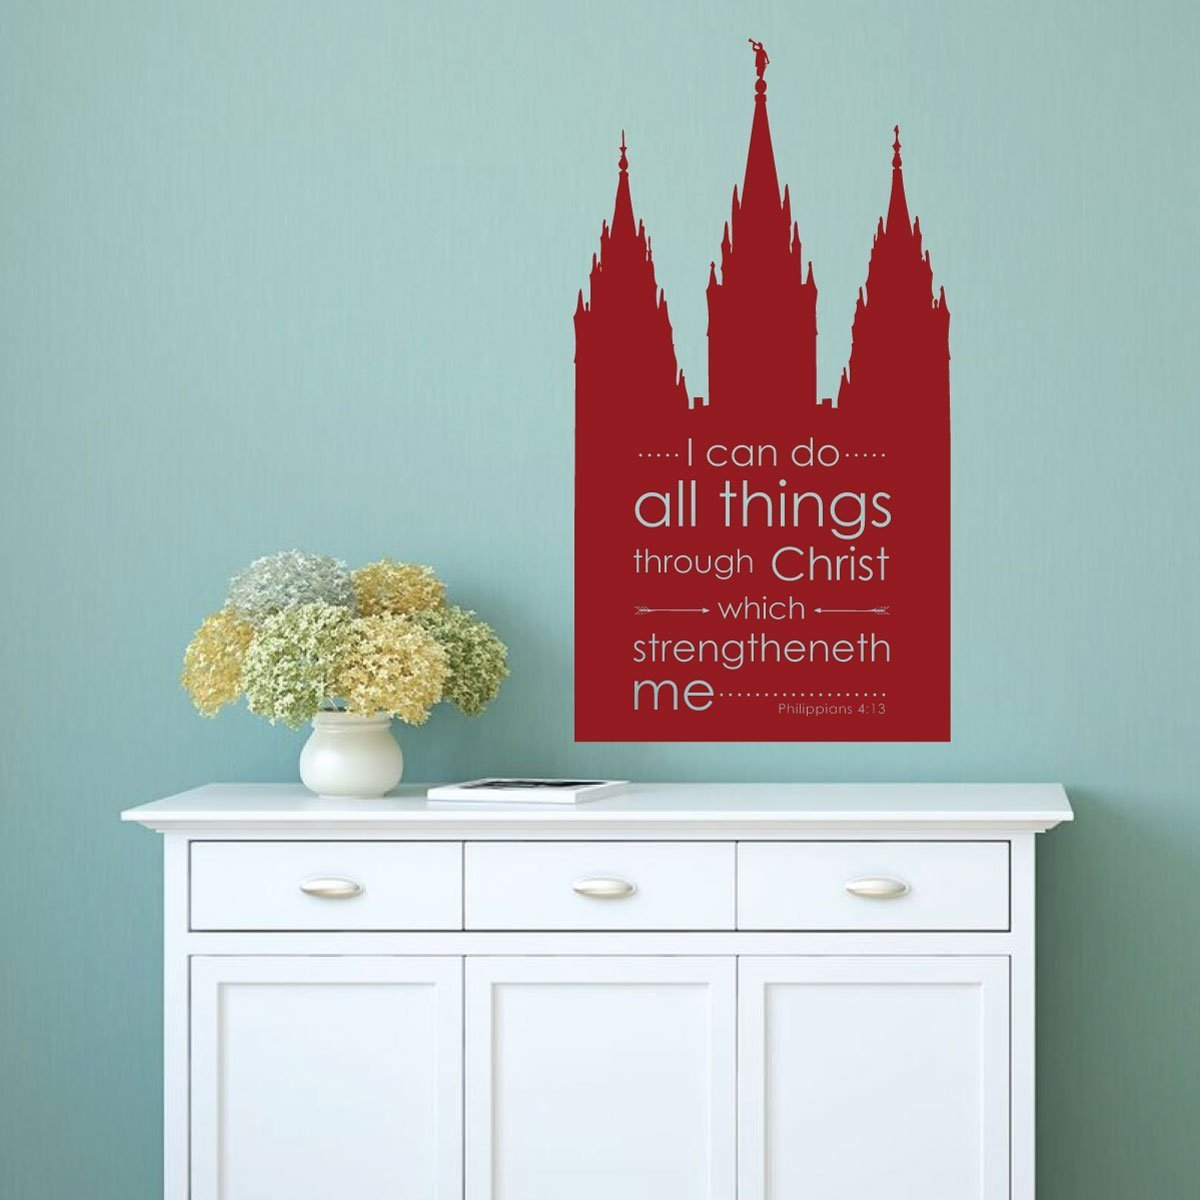 Salt Lake Temple Art - Philippians 4:13 Decal - I Can Do All Things Through Christ Which Strengtheneth Me